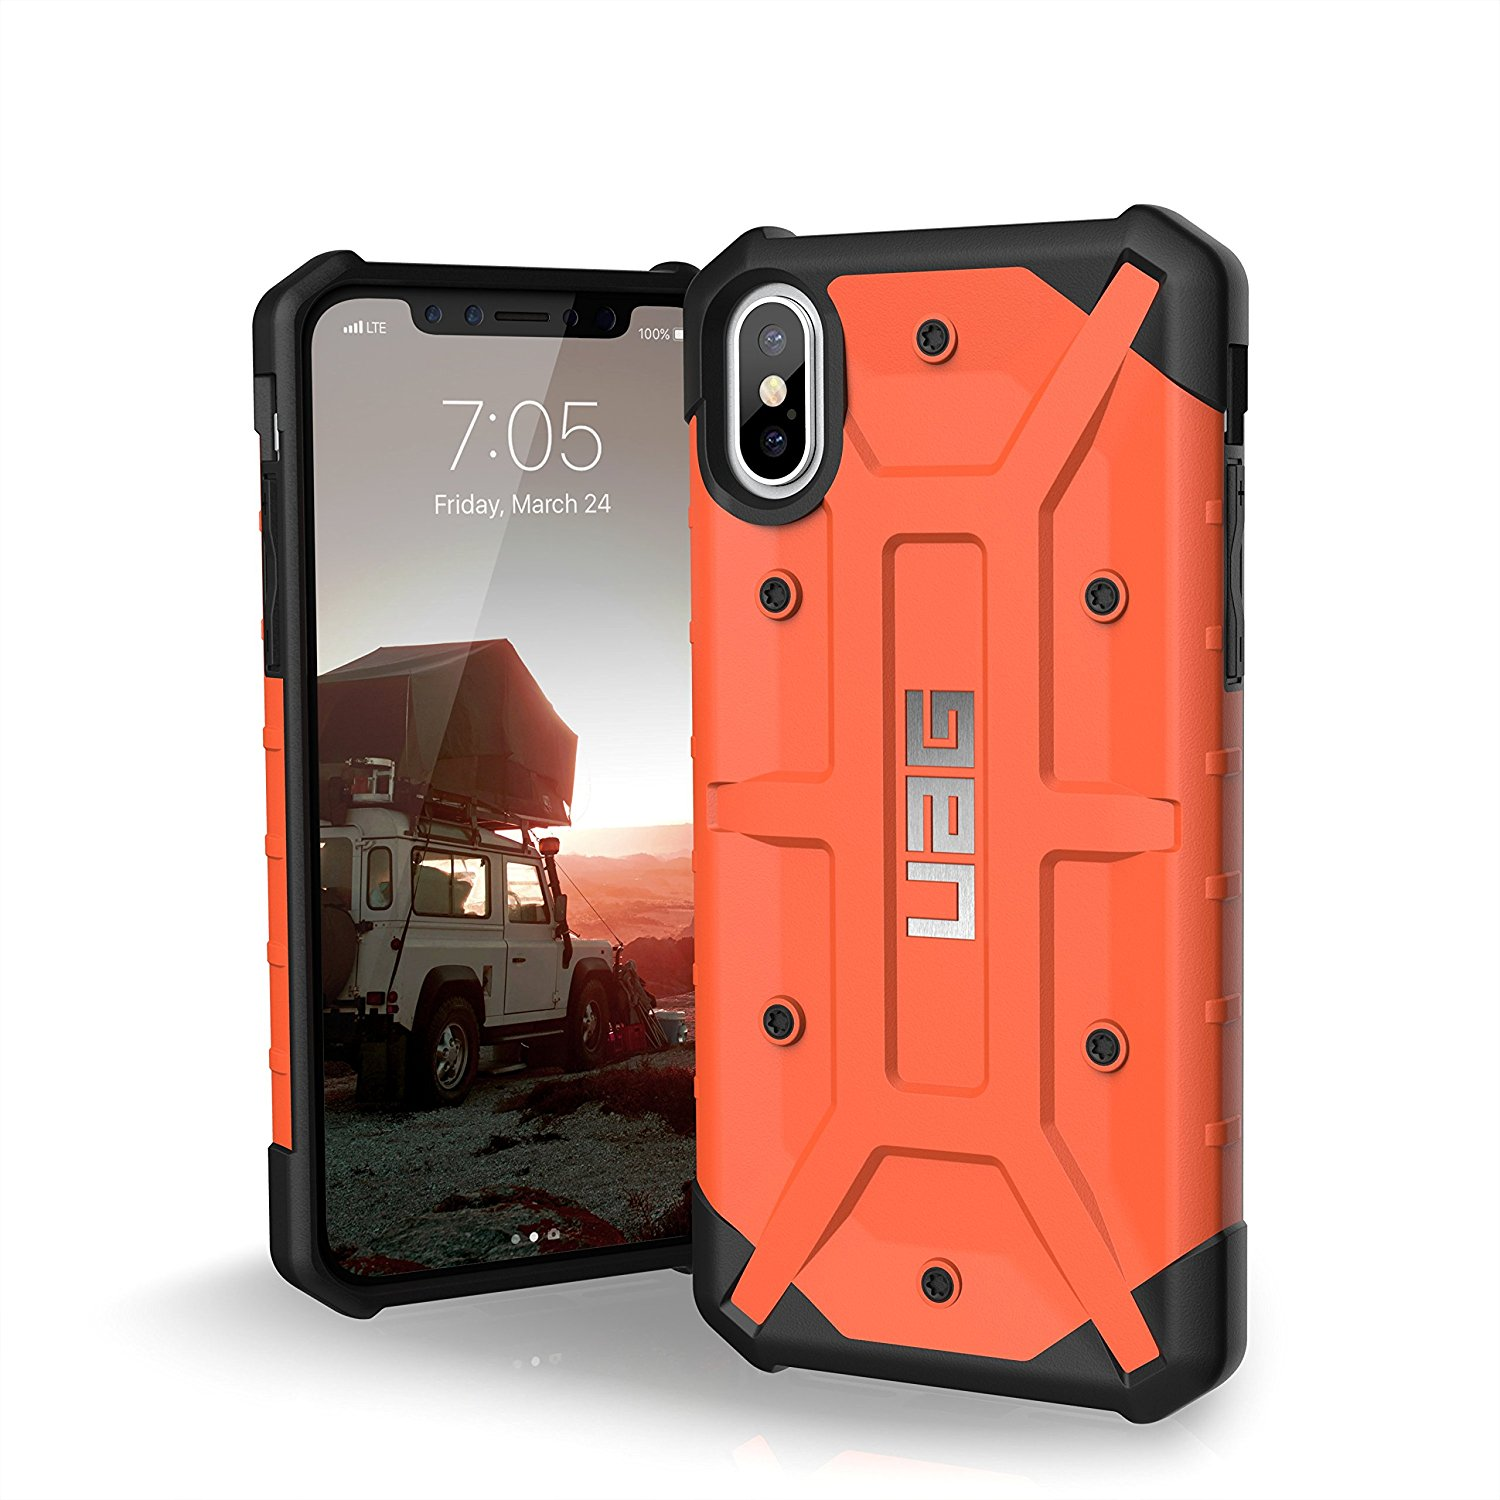 size 40 59ca2 e13af Top 10: Rugged Cases for the iPhone X - deTeched